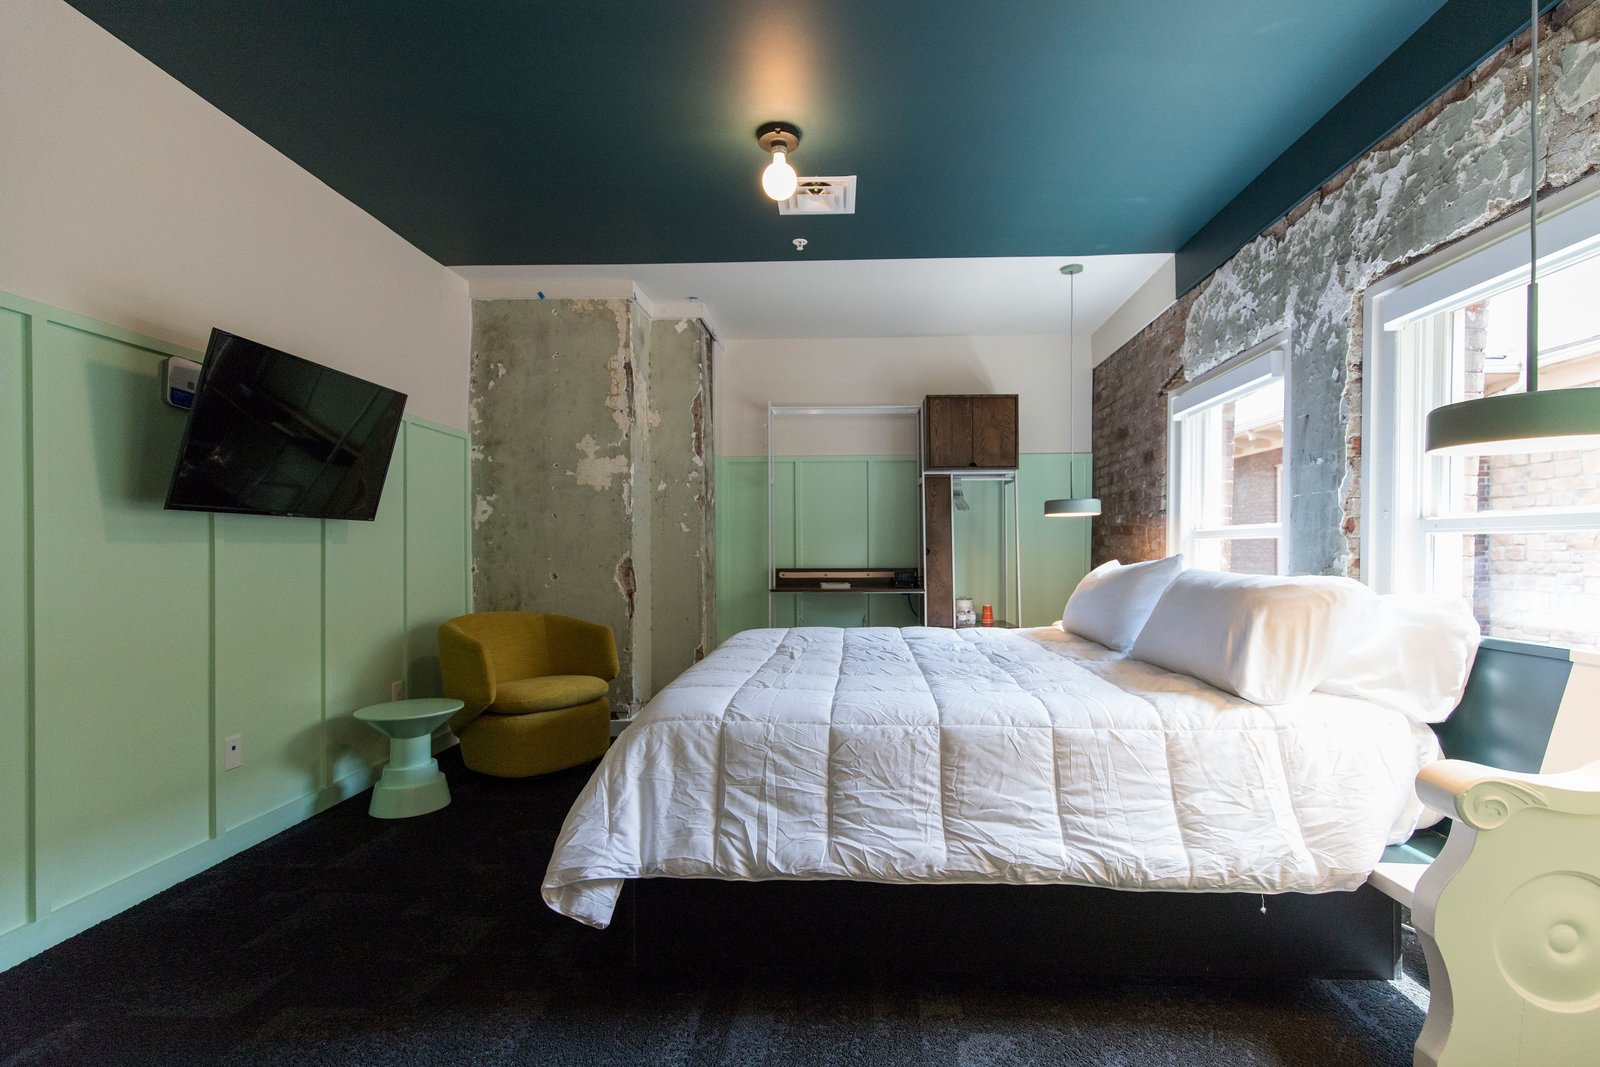 The Russell guest room